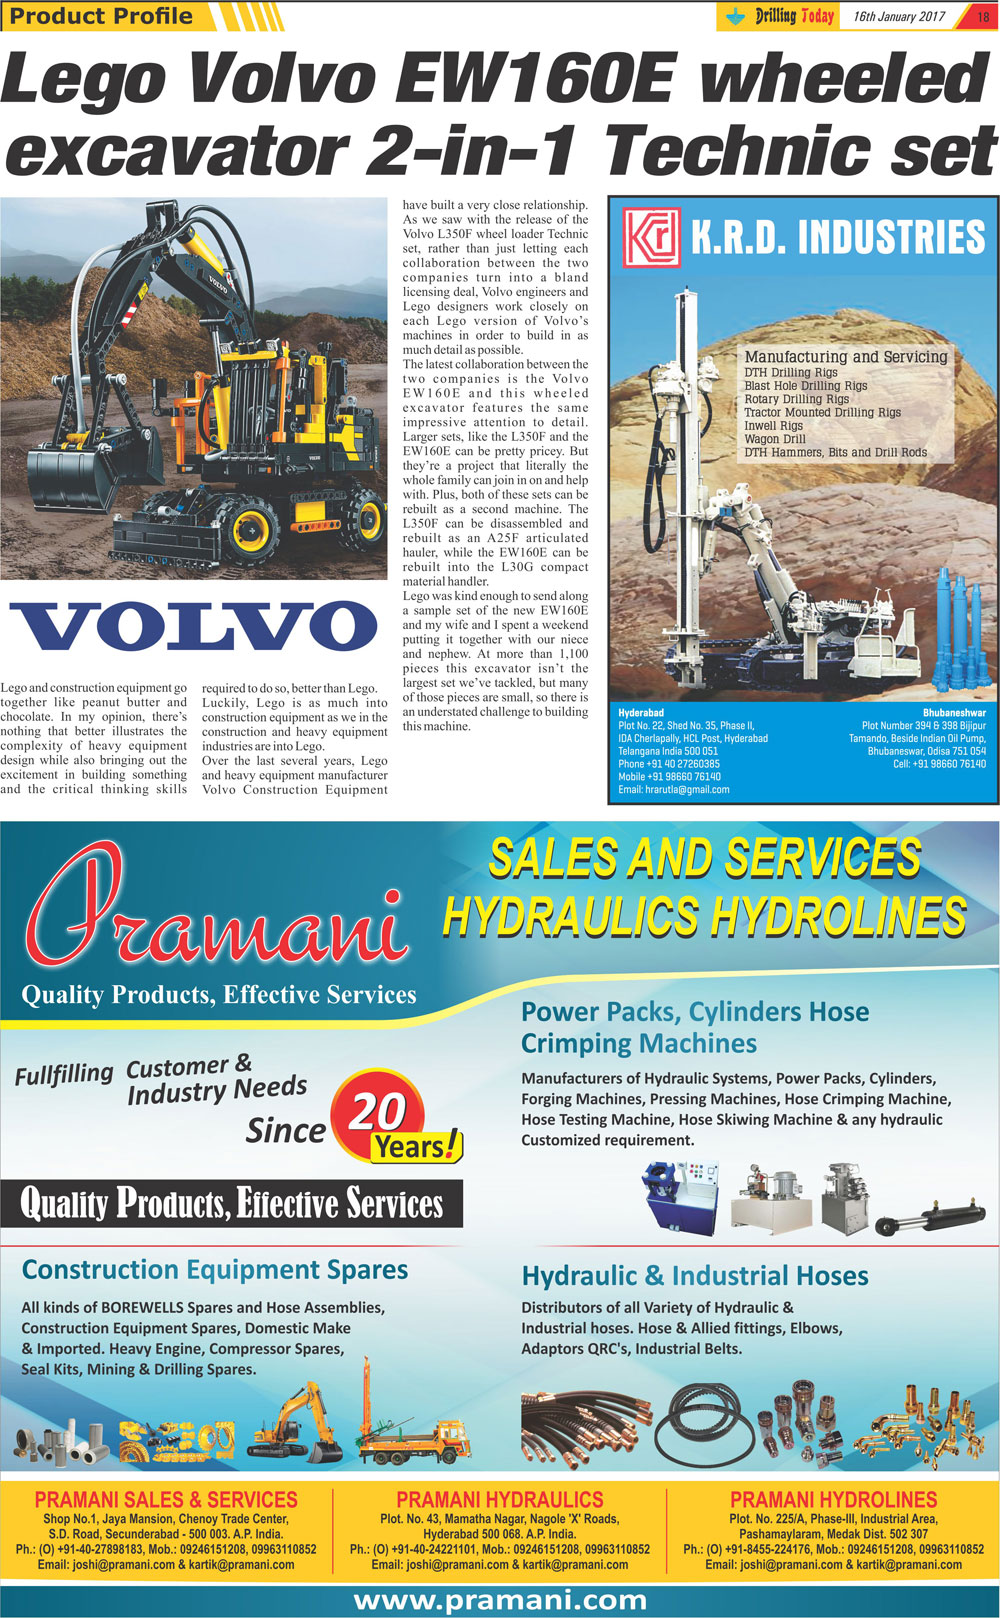 Drilling Today - Drilling Magazine January 2017 page 18